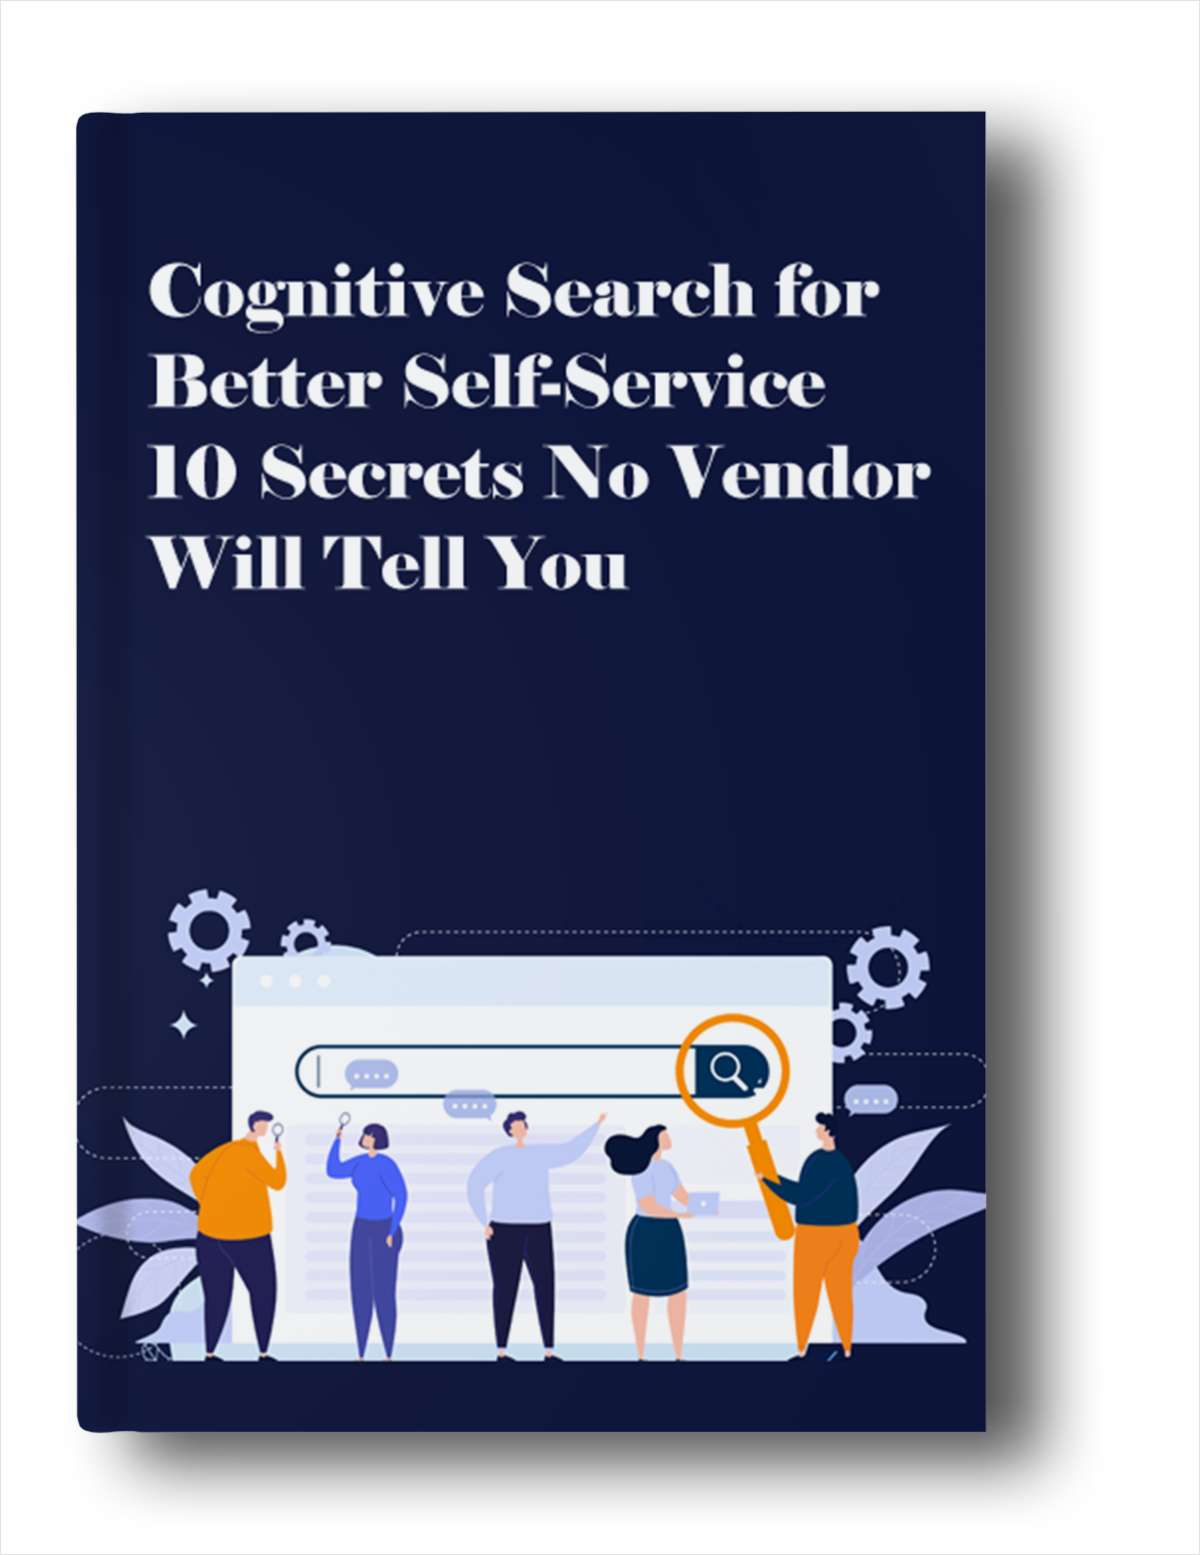 Cognitive Search For Better Self-Service: 10 Secrets No Vendor Will Tell You